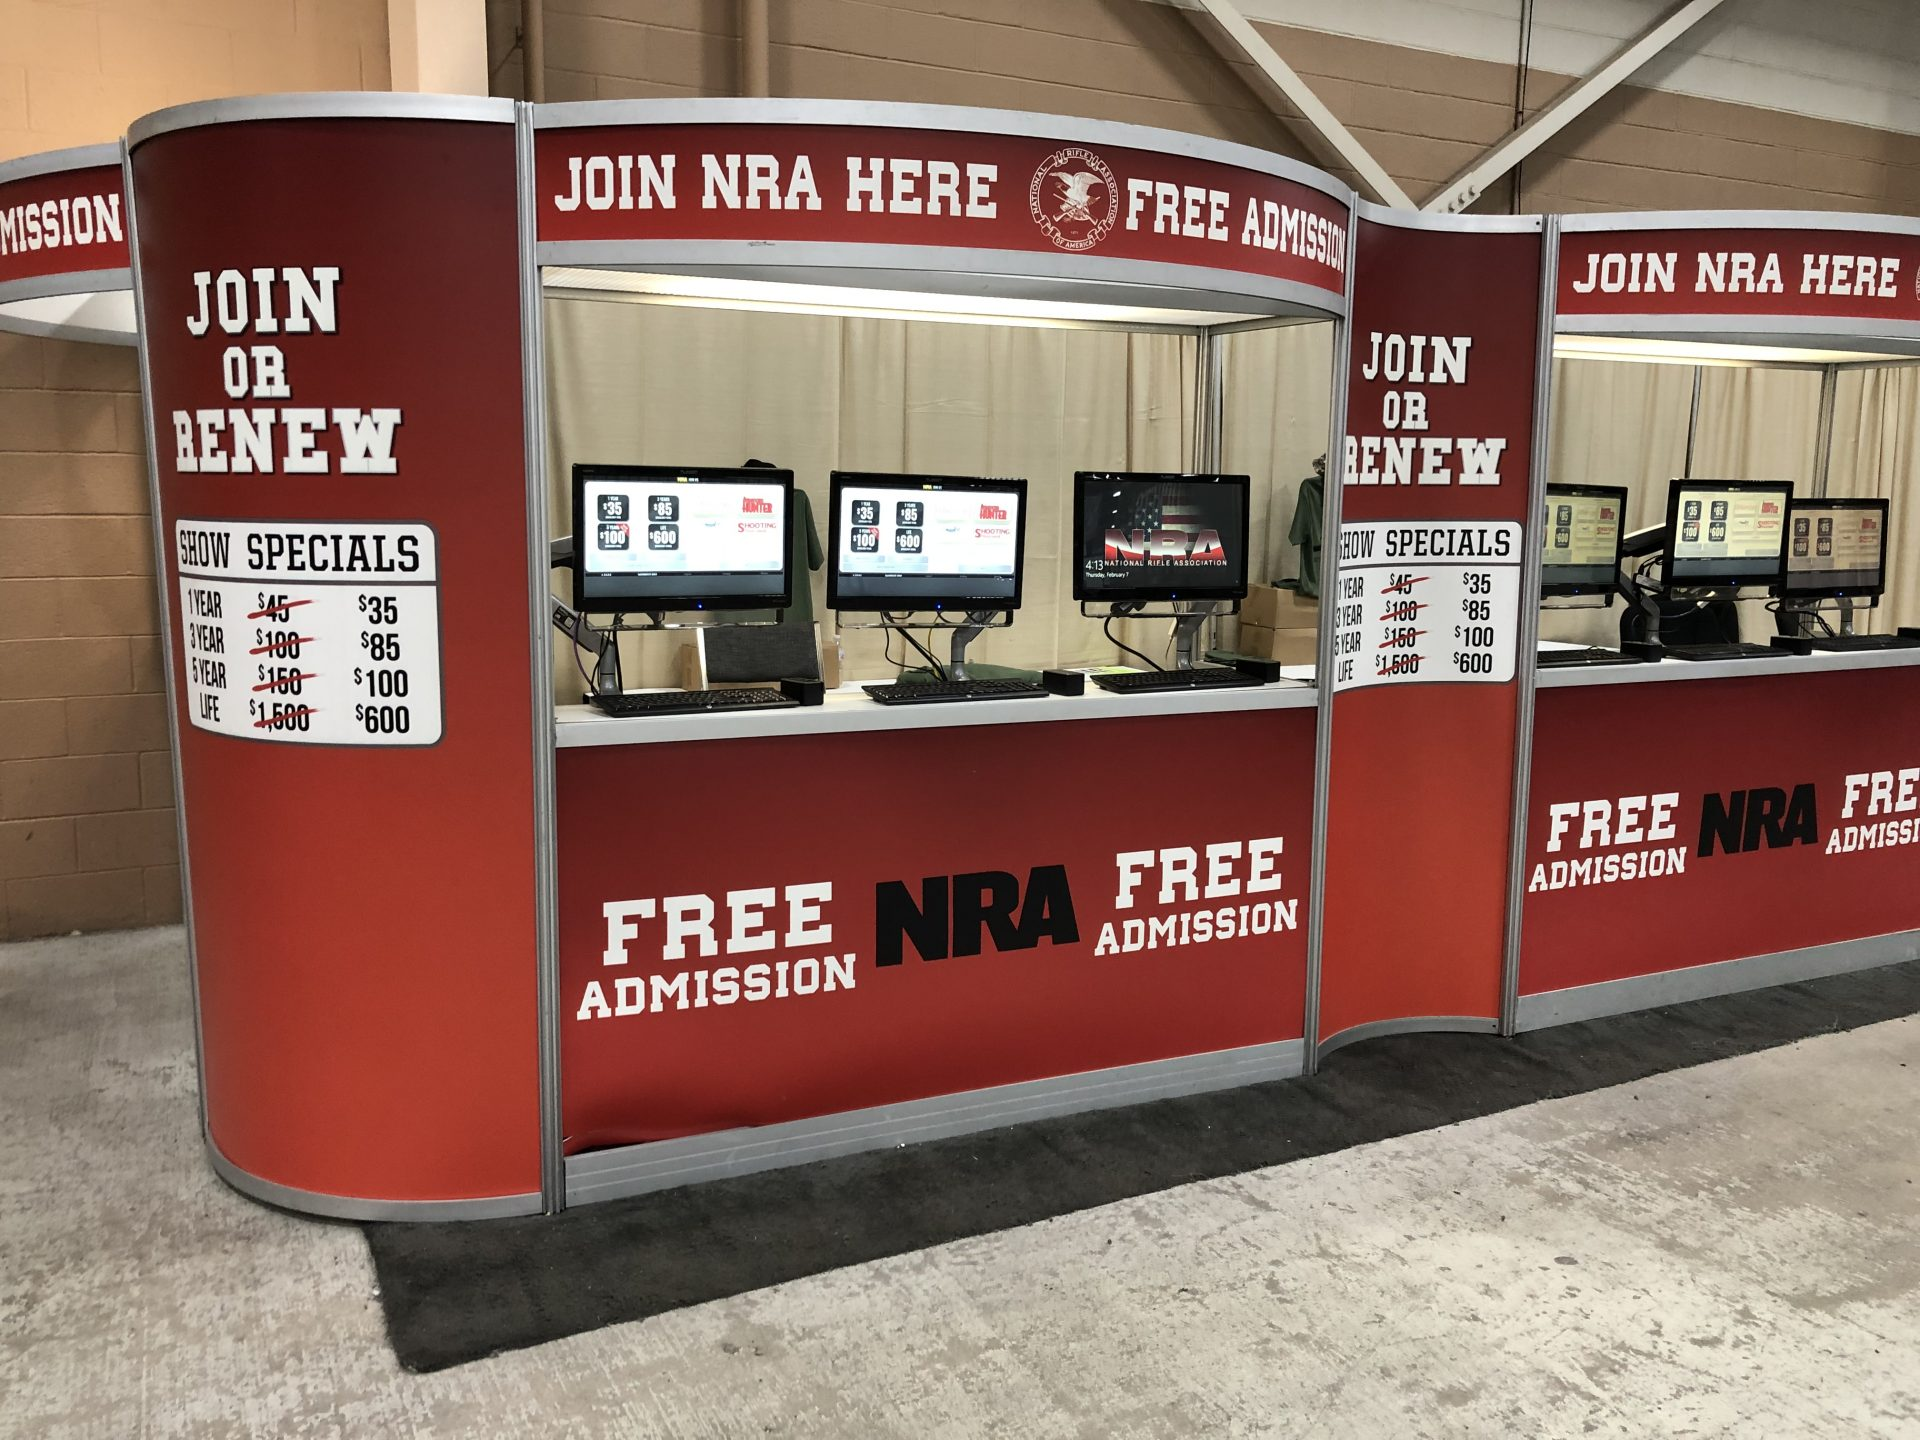 A booth at the Great American Outdoor Show in Harrisburg is seen on Feb. 7, 2019. The NRA offers free admission to the show for people who join or renew their membership.